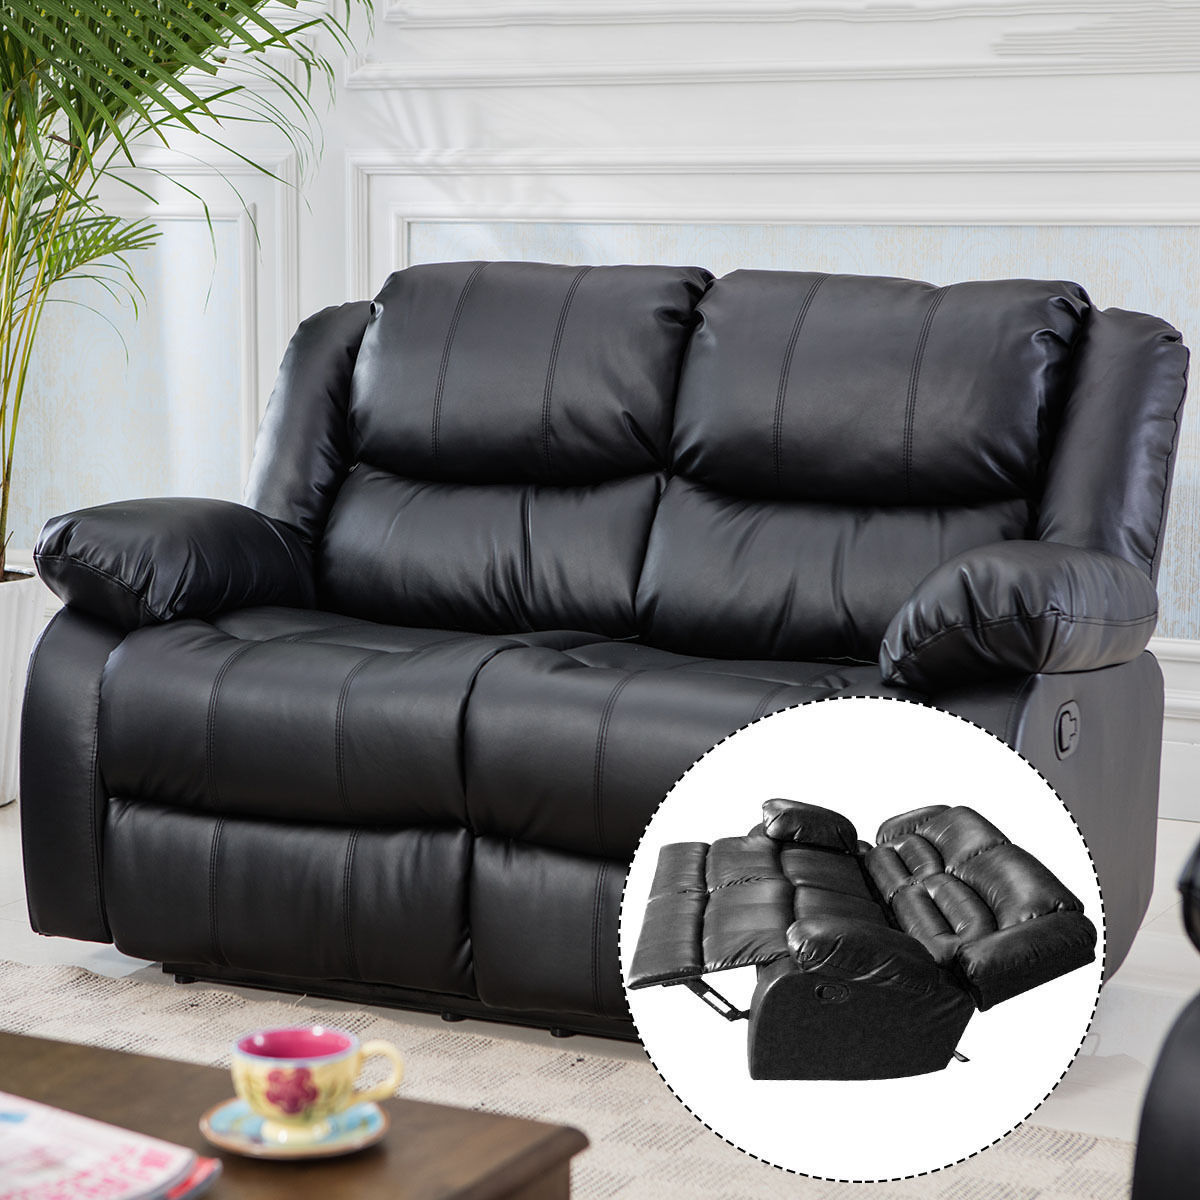 Costway Black Motion Sofa Loveseat Recliner Living Room Bonded Leather Furniture(loveseat)